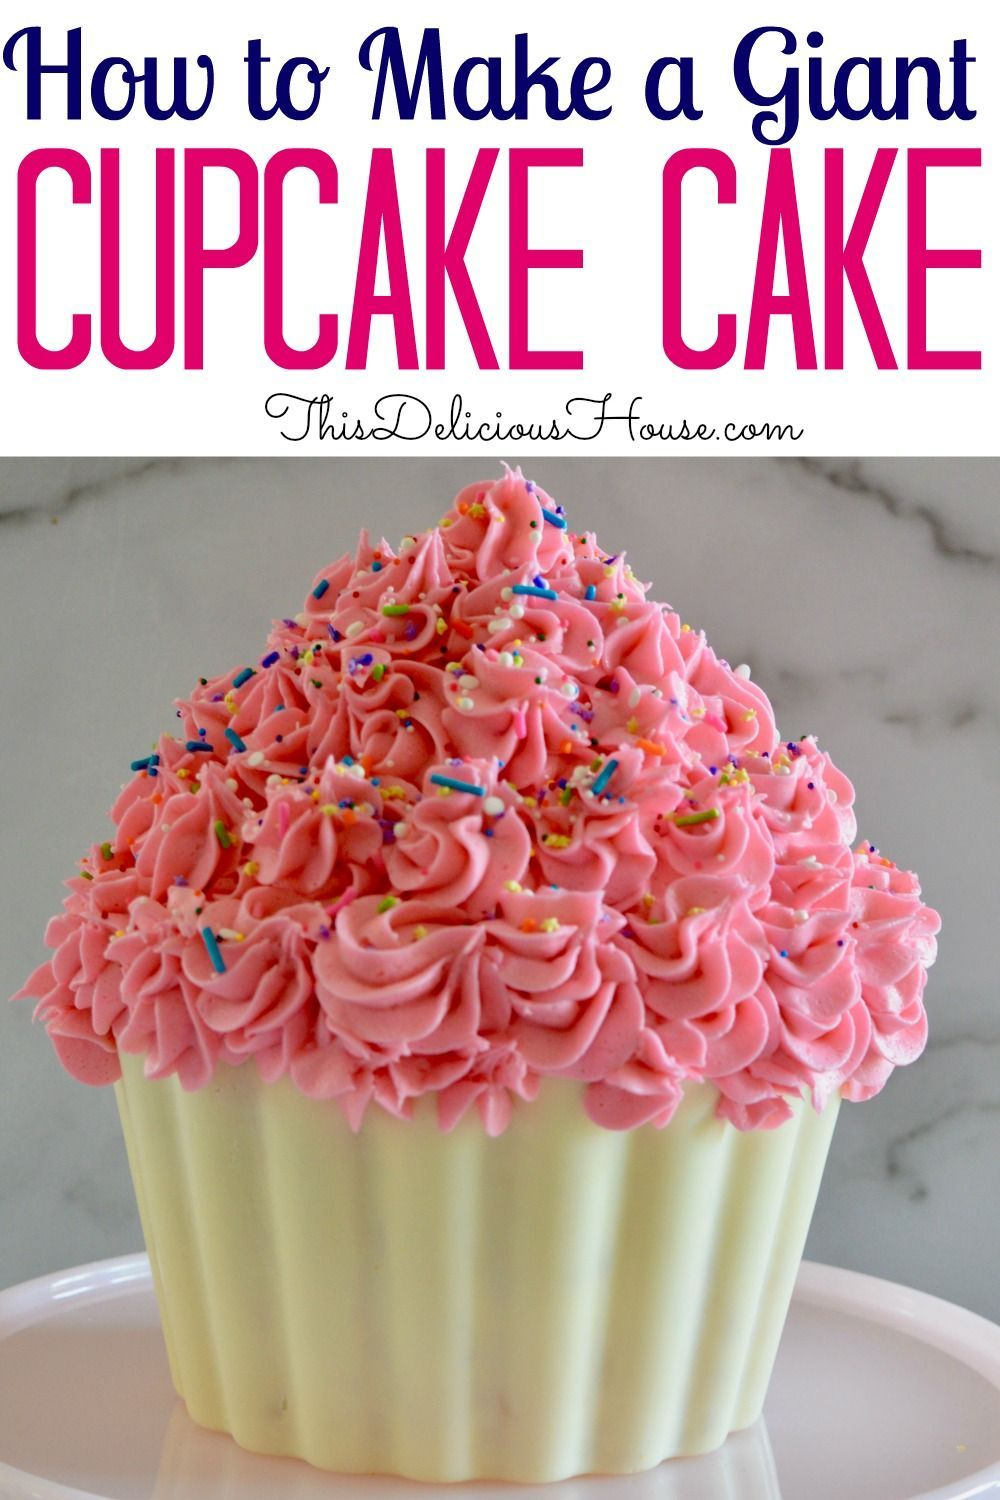 Giant Cupcake Cake Recipe With Images Giant Cupcake Recipes